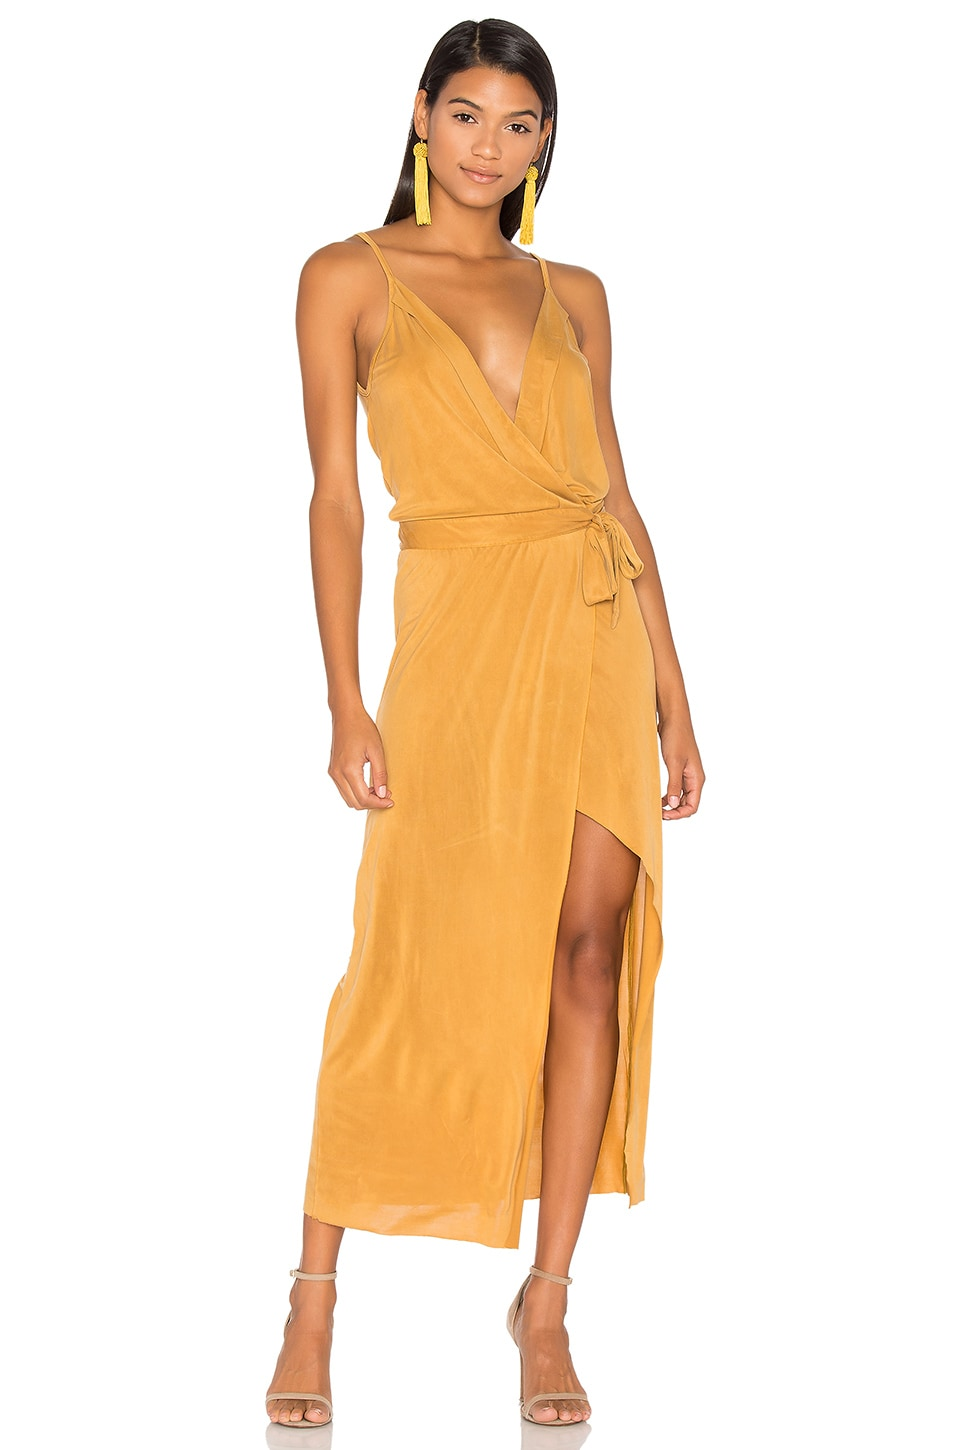 YFB CLOTHING Bessie Dress in Mustard